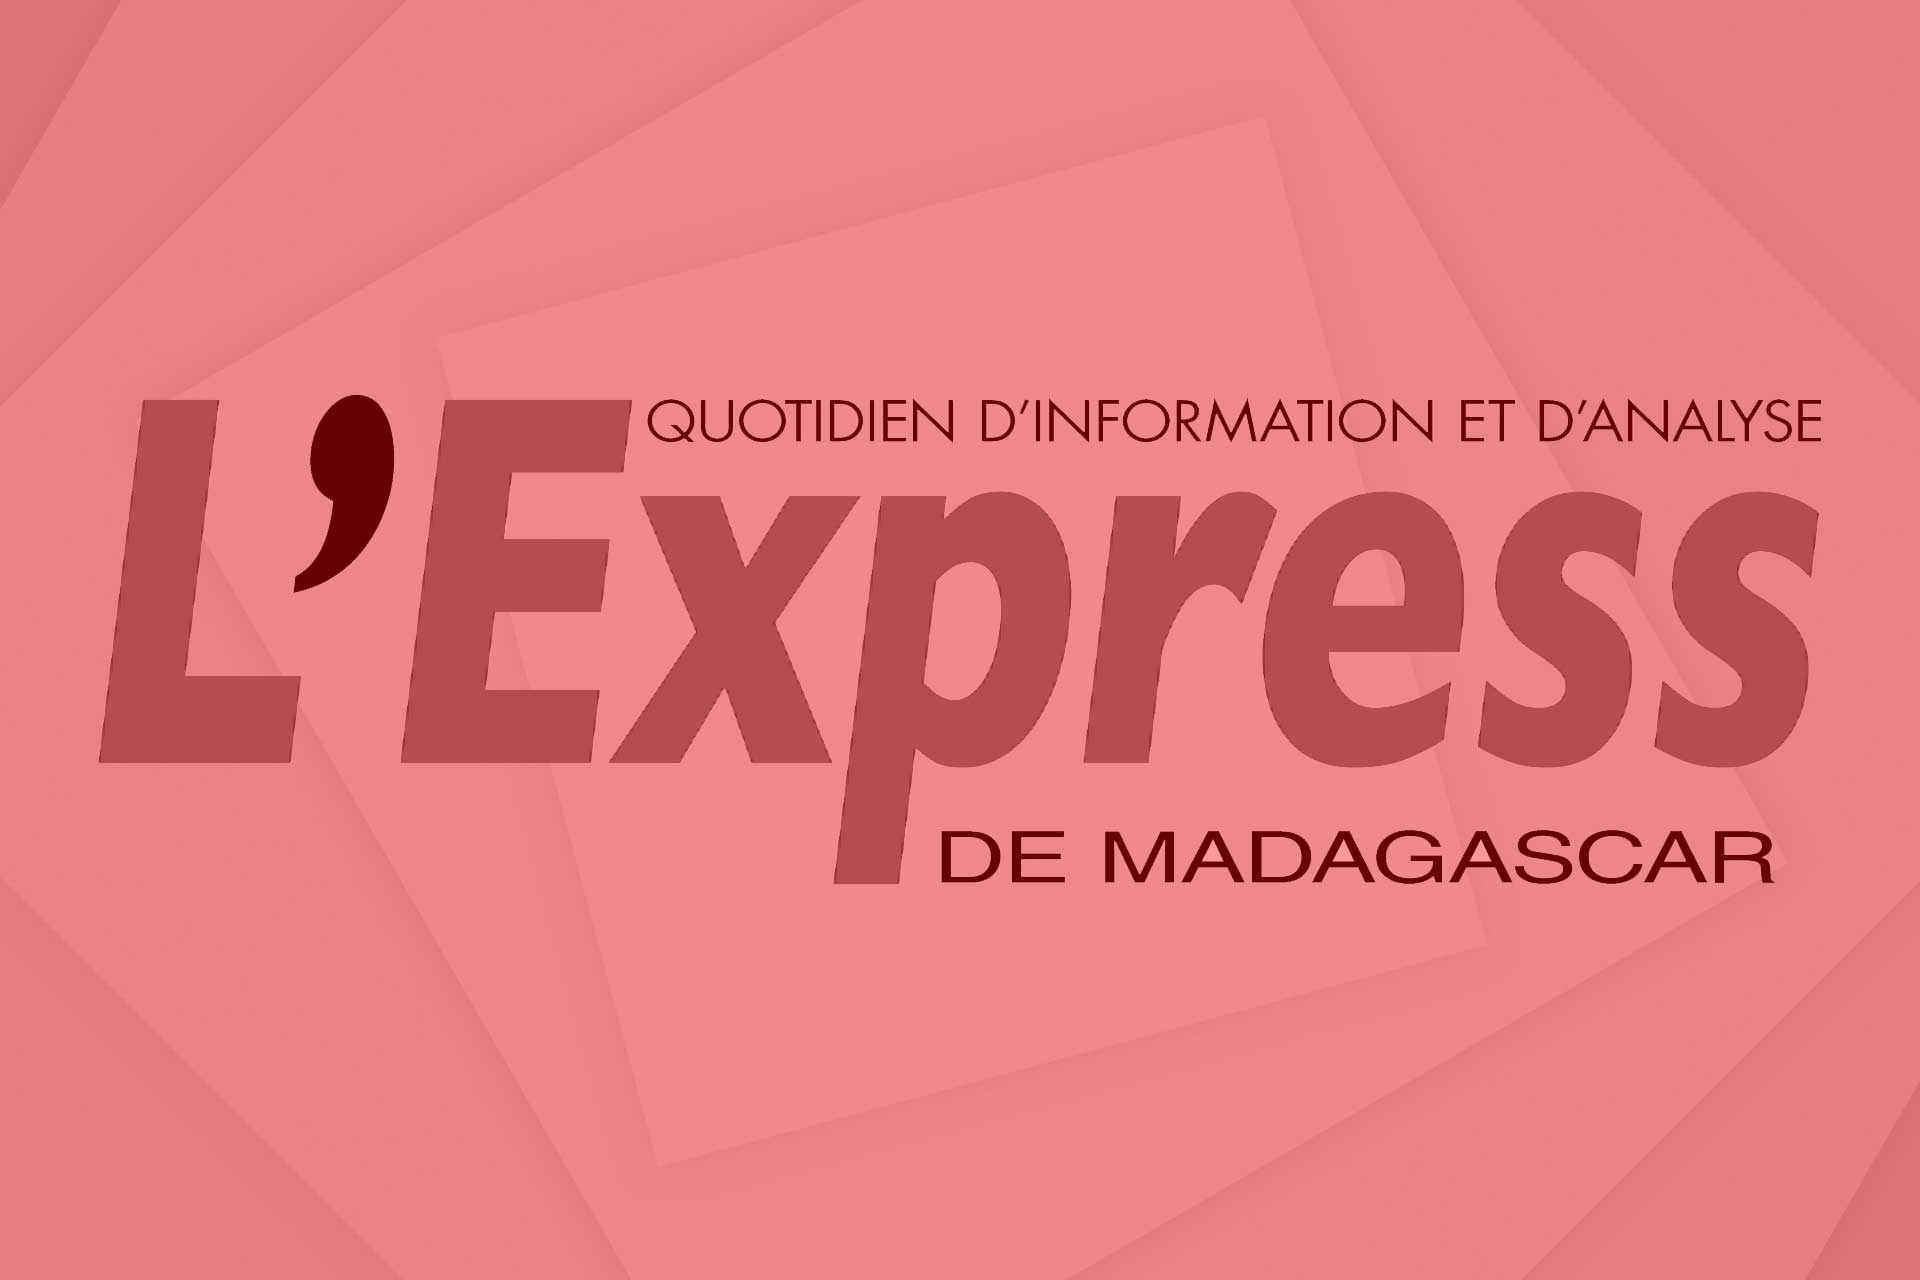 Transport aérien – Air Madagascar dans l'impasse